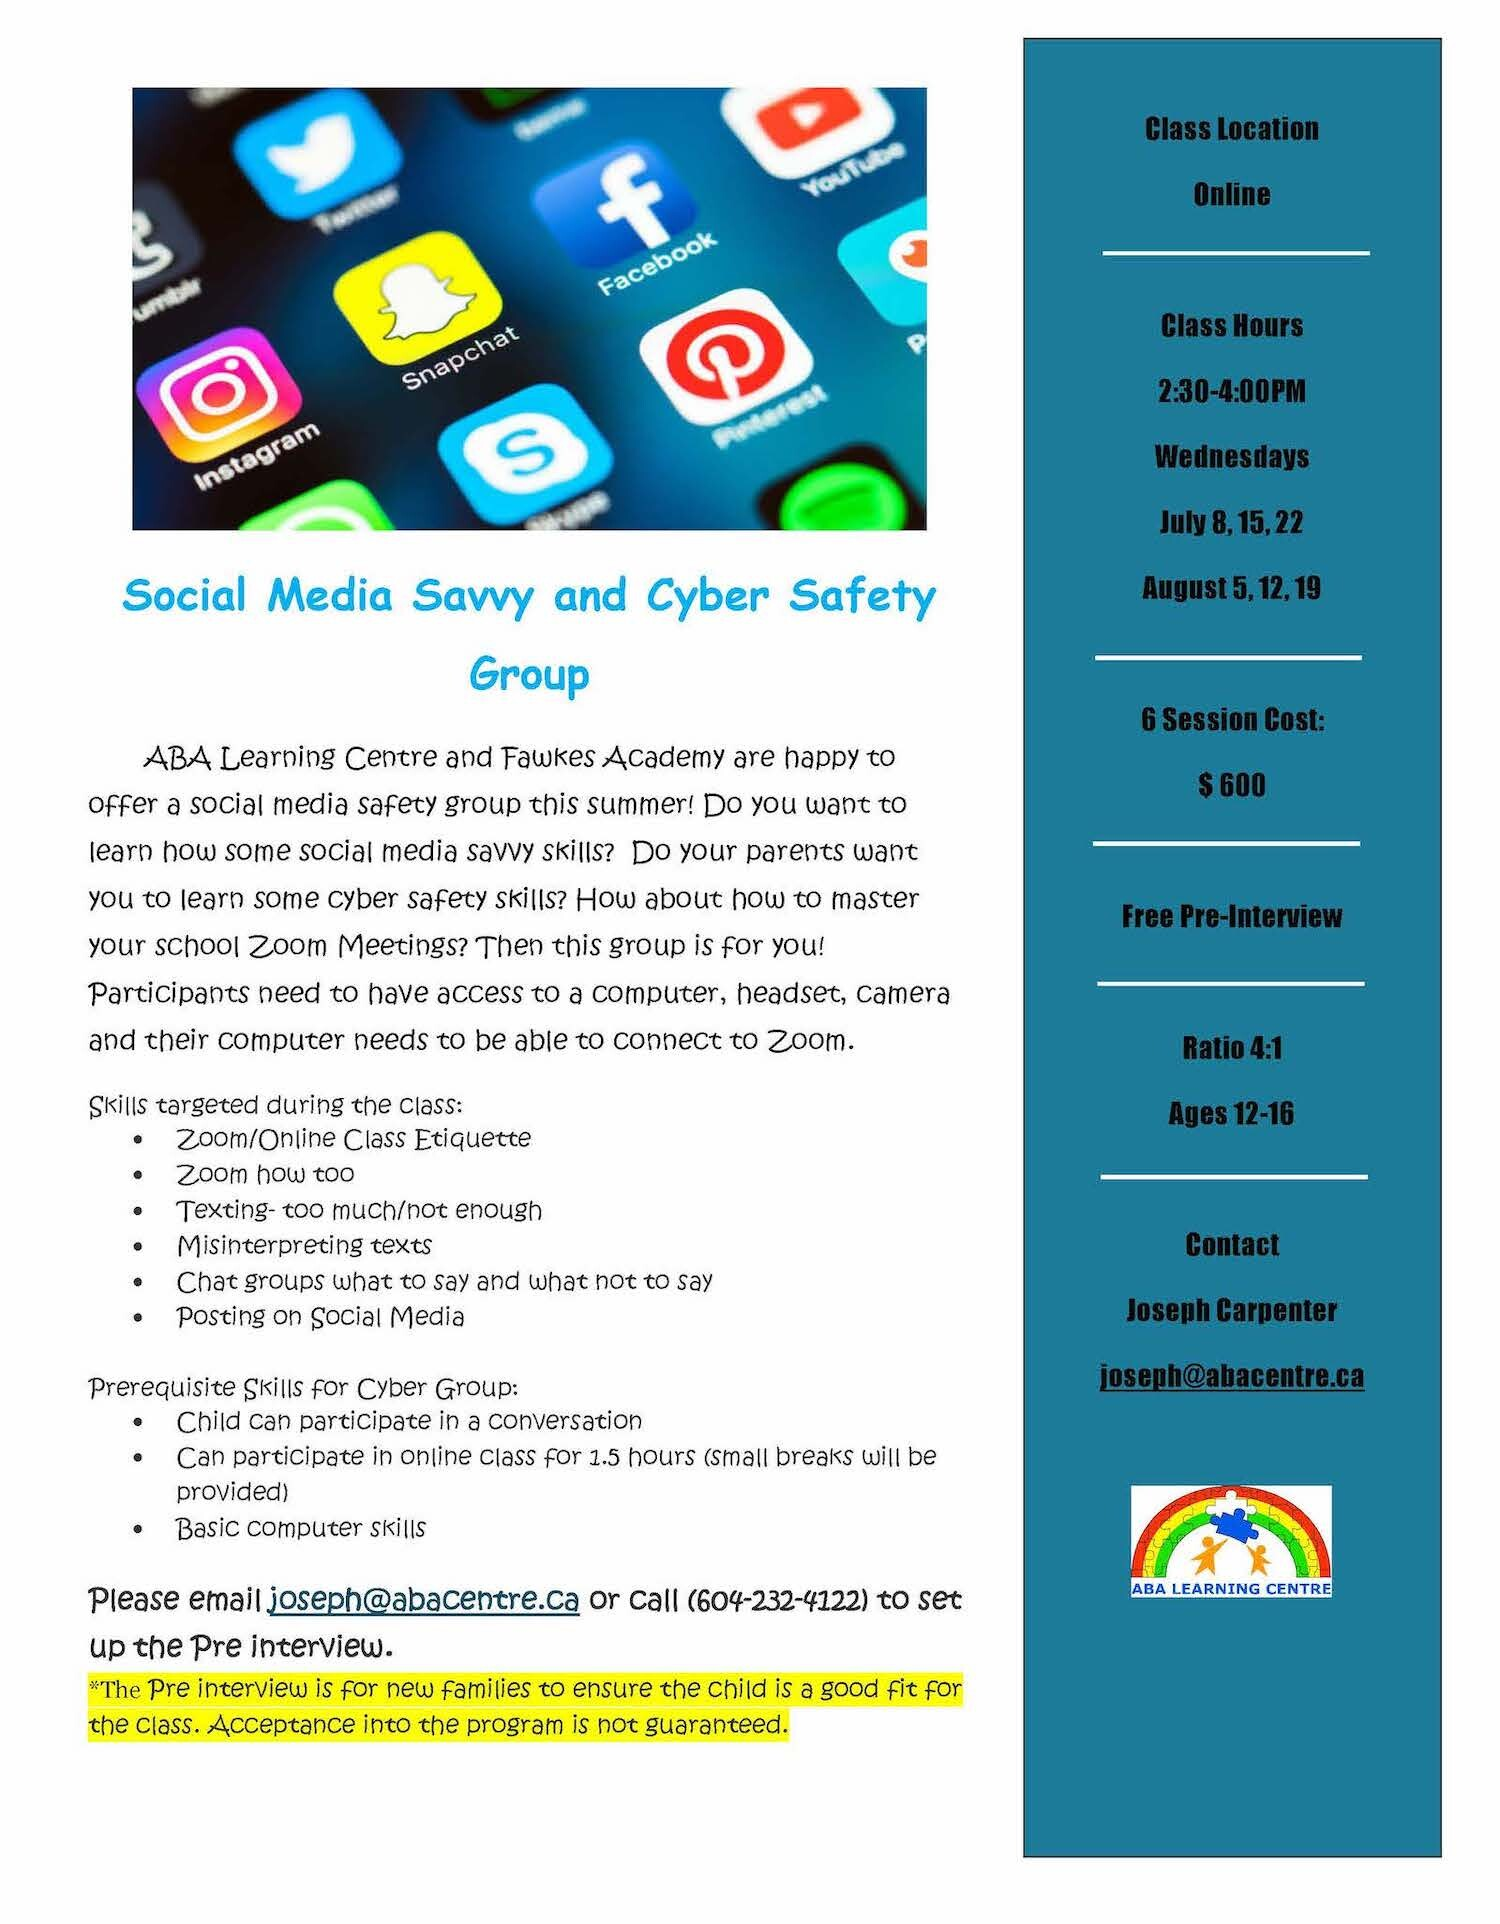 Social Media Savvy and Cyber Safety Group